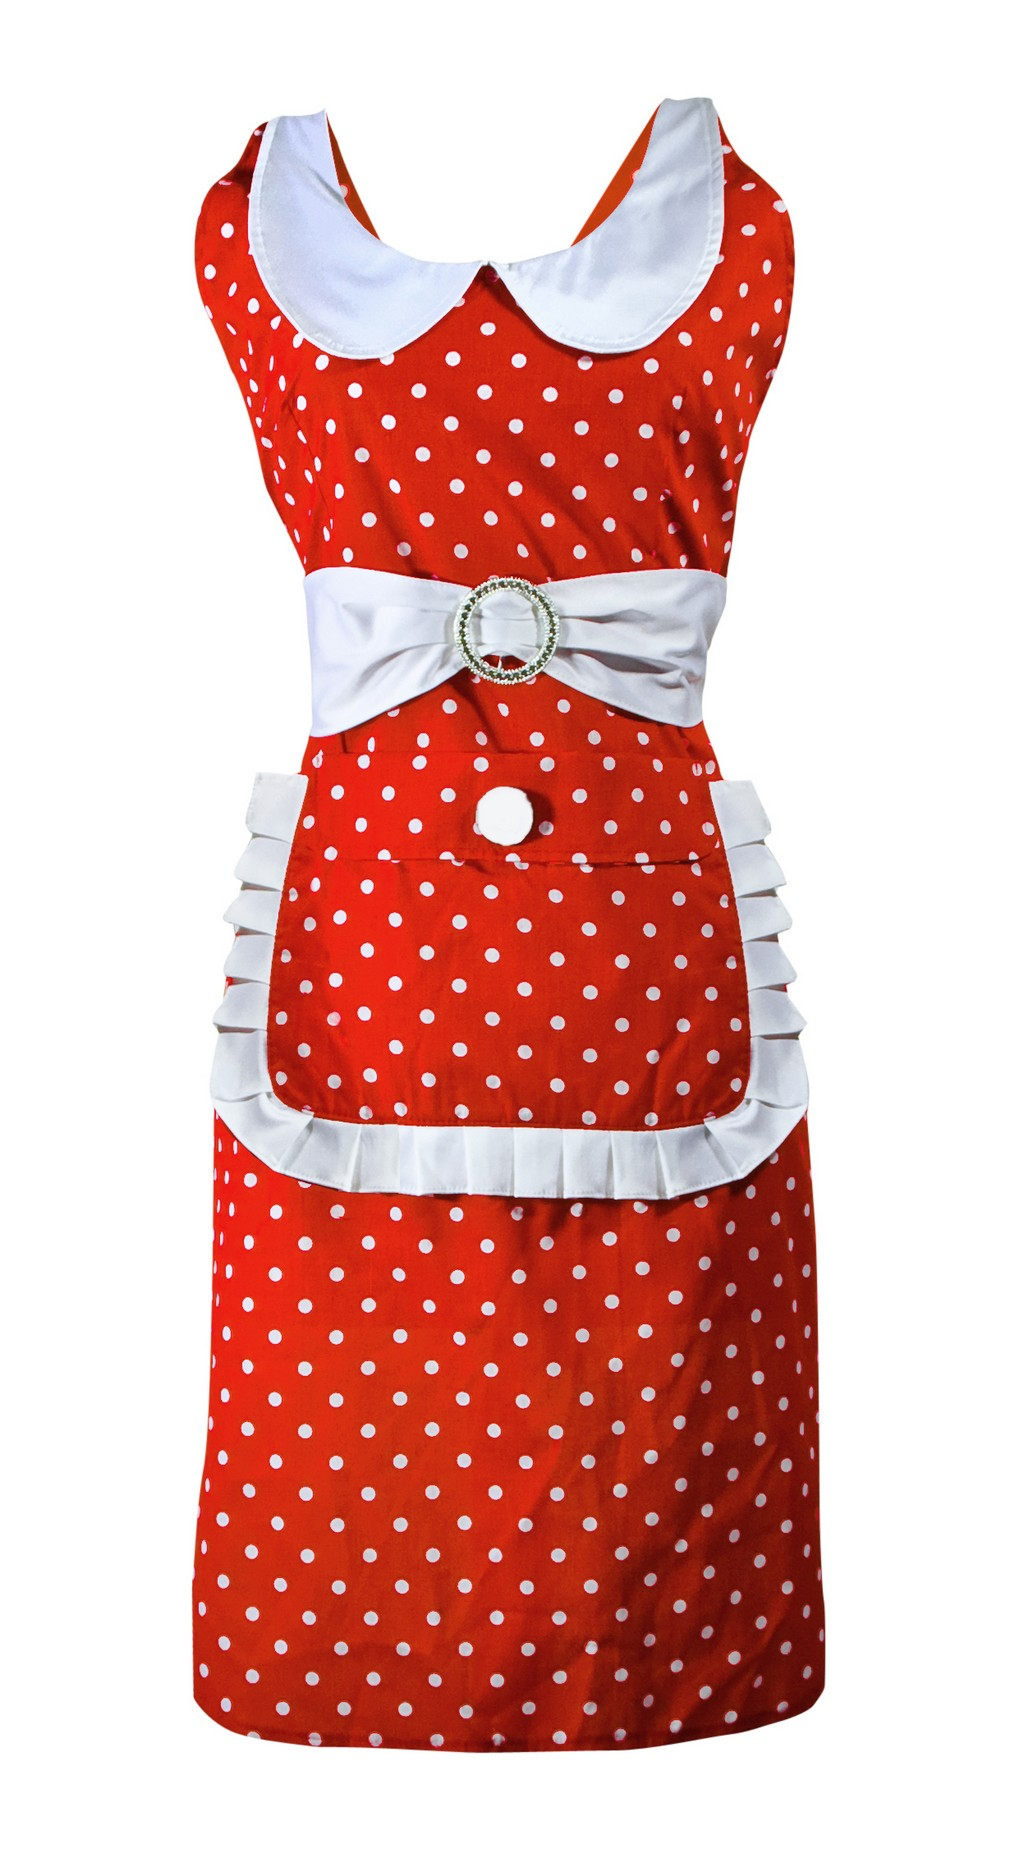 apron pin up, apron pin up, macho novelty mens aprons, cobbler apron